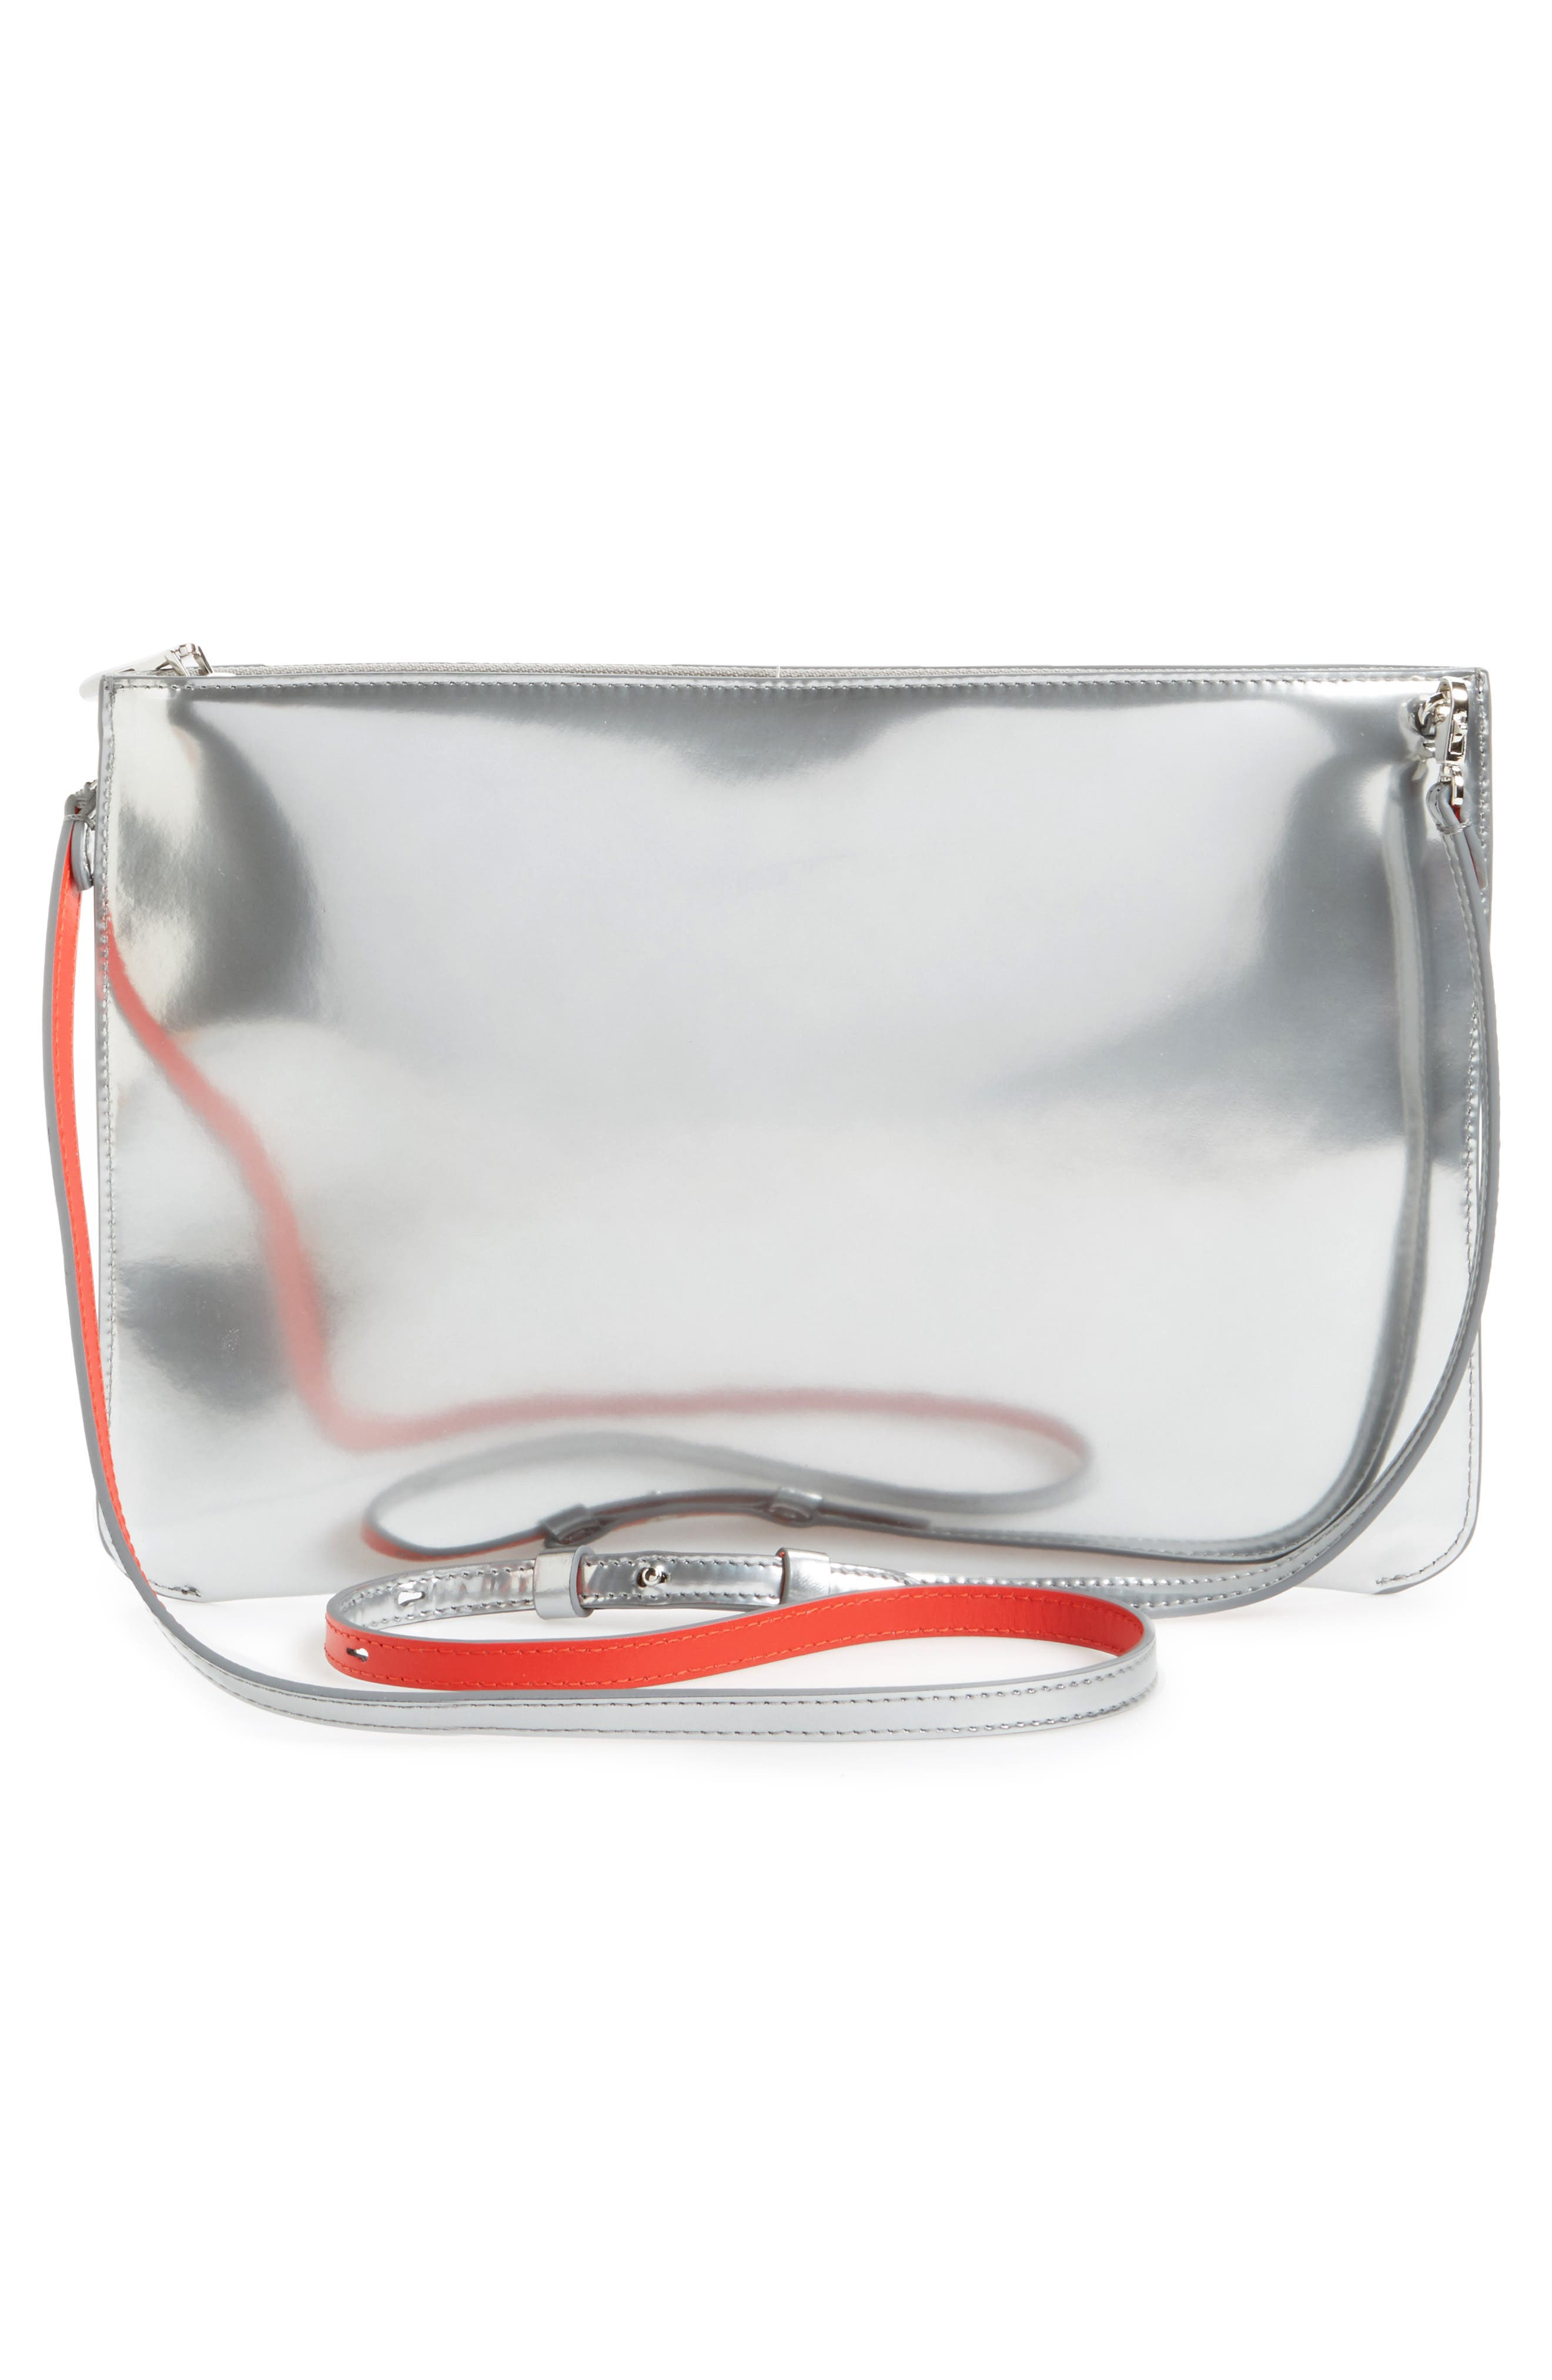 Loubiclutch Spiked Leather Clutch,                             Alternate thumbnail 3, color,                             040